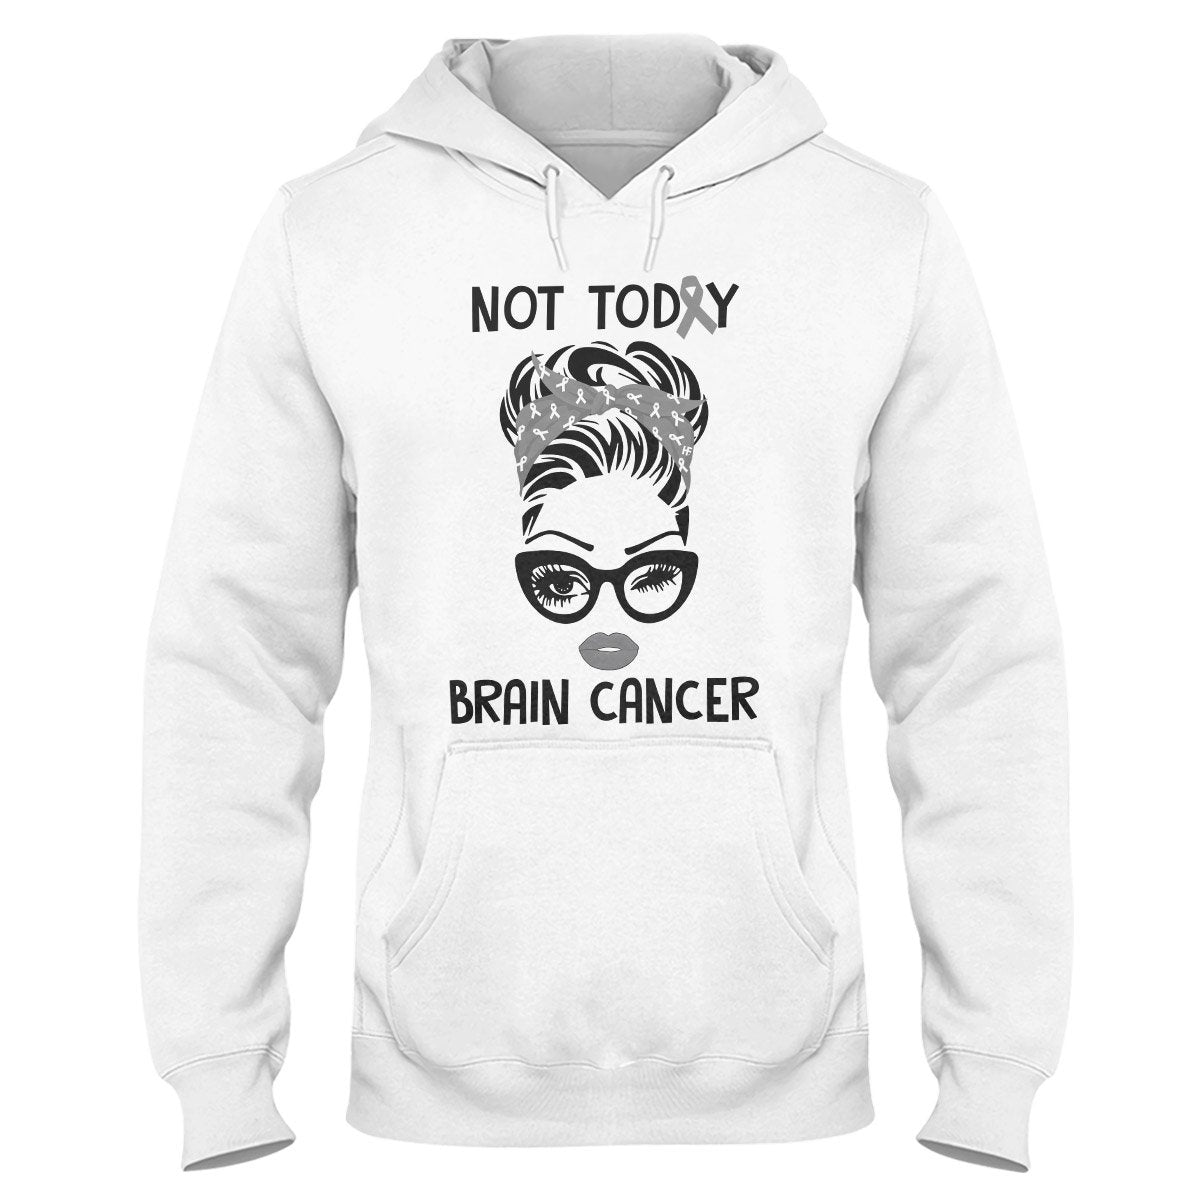 Not Today Brain Cancer Hoodie, Brain Cancer Awareness Shirt And Gift For A Loved One